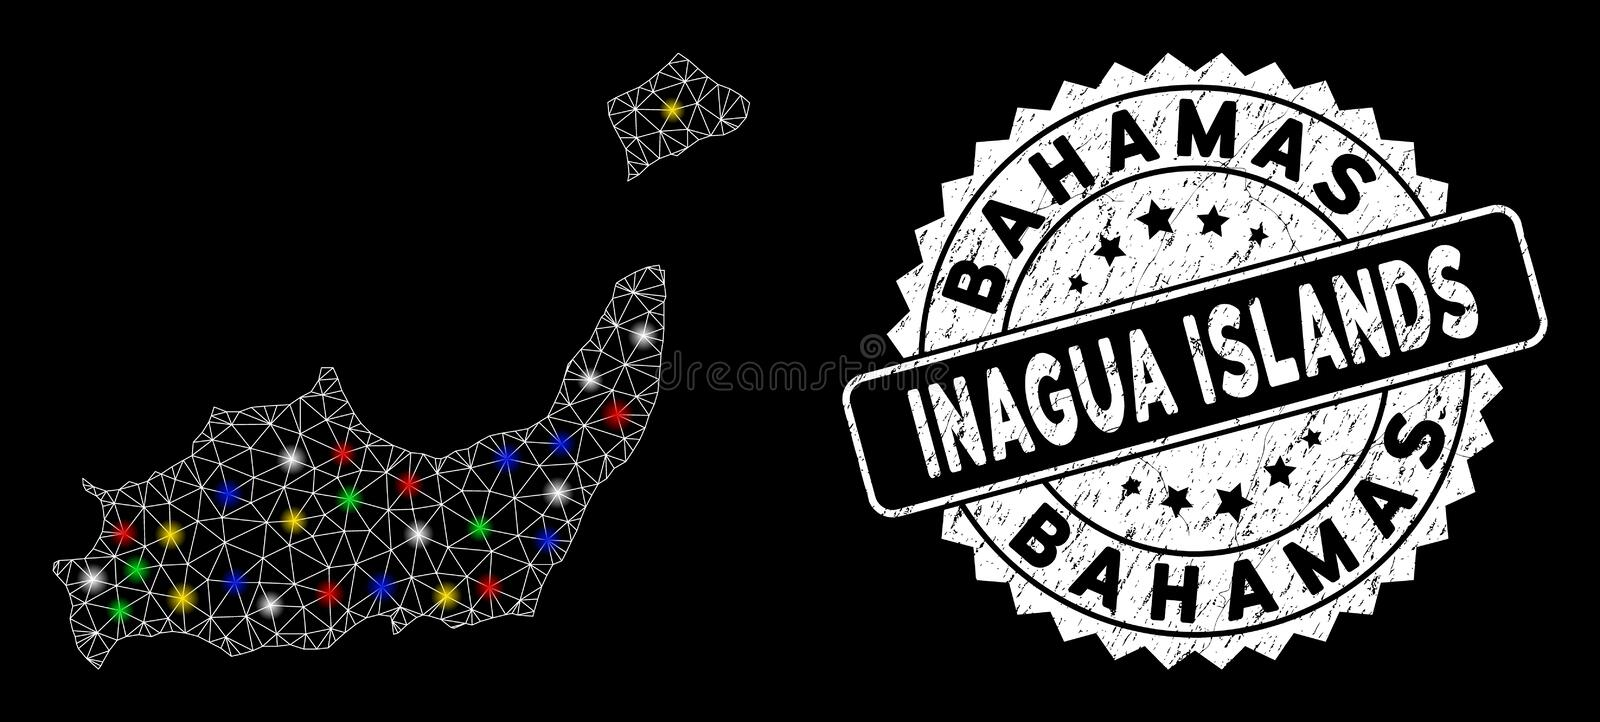 Bright Mesh Network Inagua Islands Map with Light Spots and Grunge Stamp. Bright mesh Inagua Islands map with lightspot effect, and seal stamp. Wire frame vector illustration